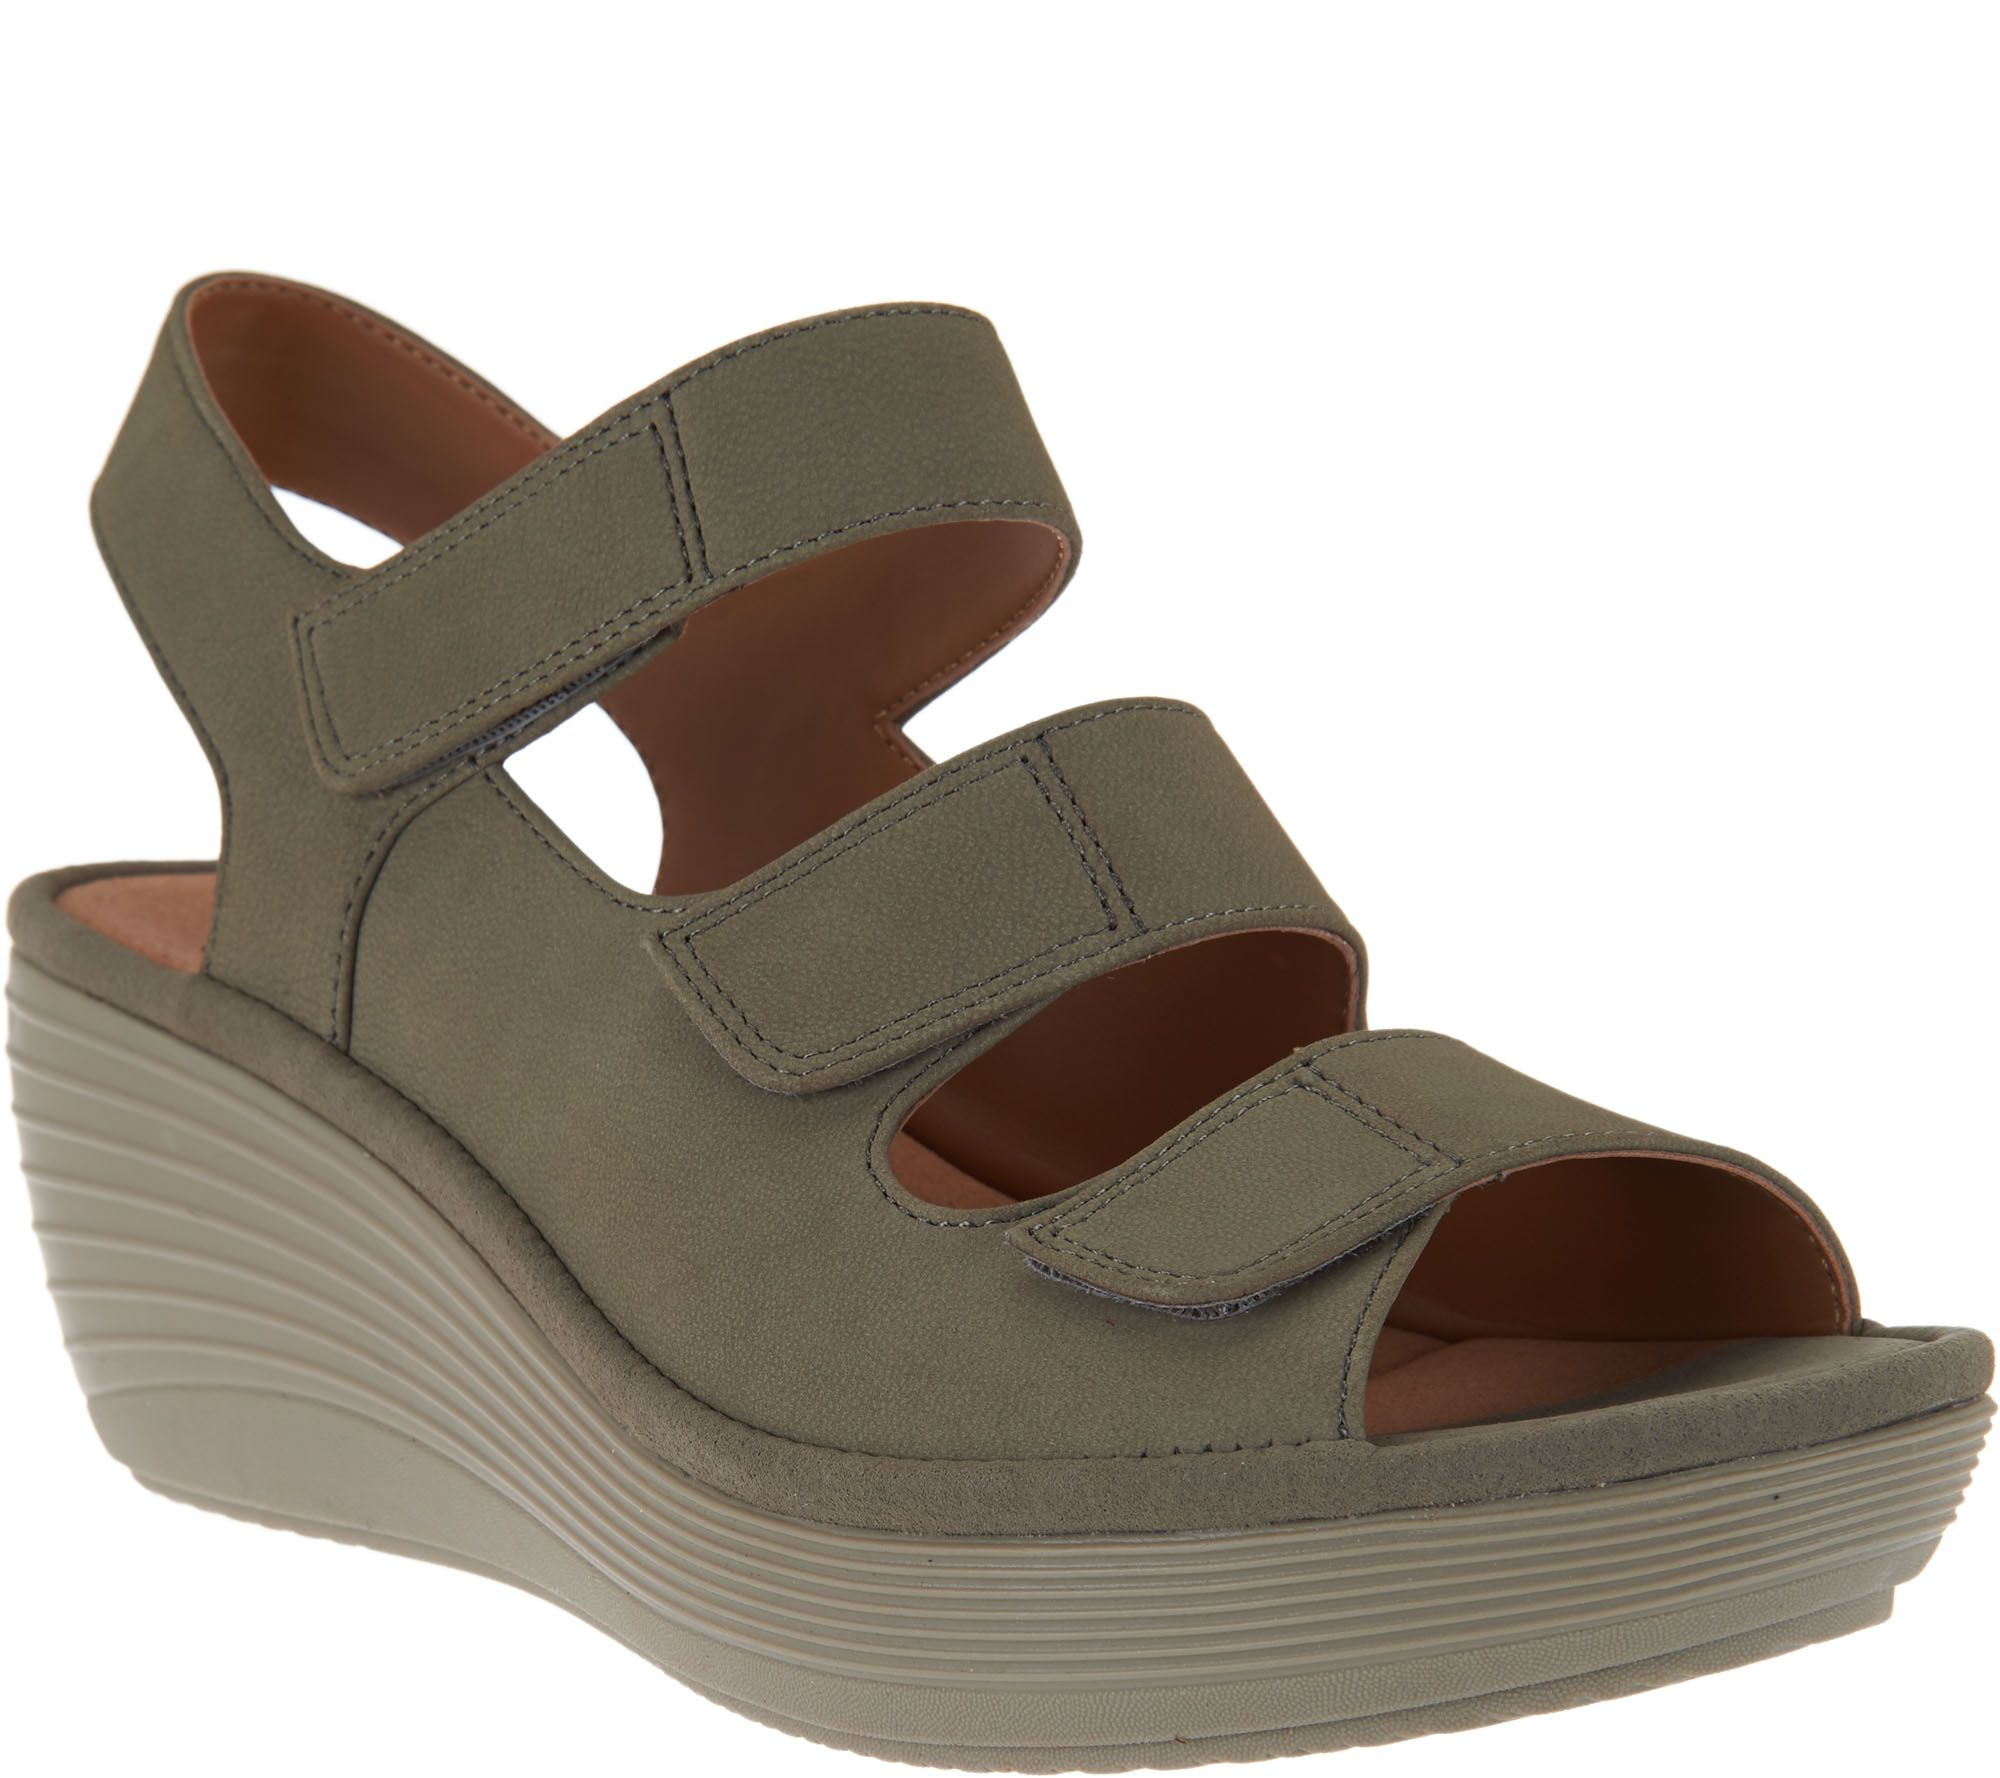 bbb77cb63c10 Clarks Nubuck Triple Strap Wedge Sandals - Reedly Juno - Page 1 — QVC.com